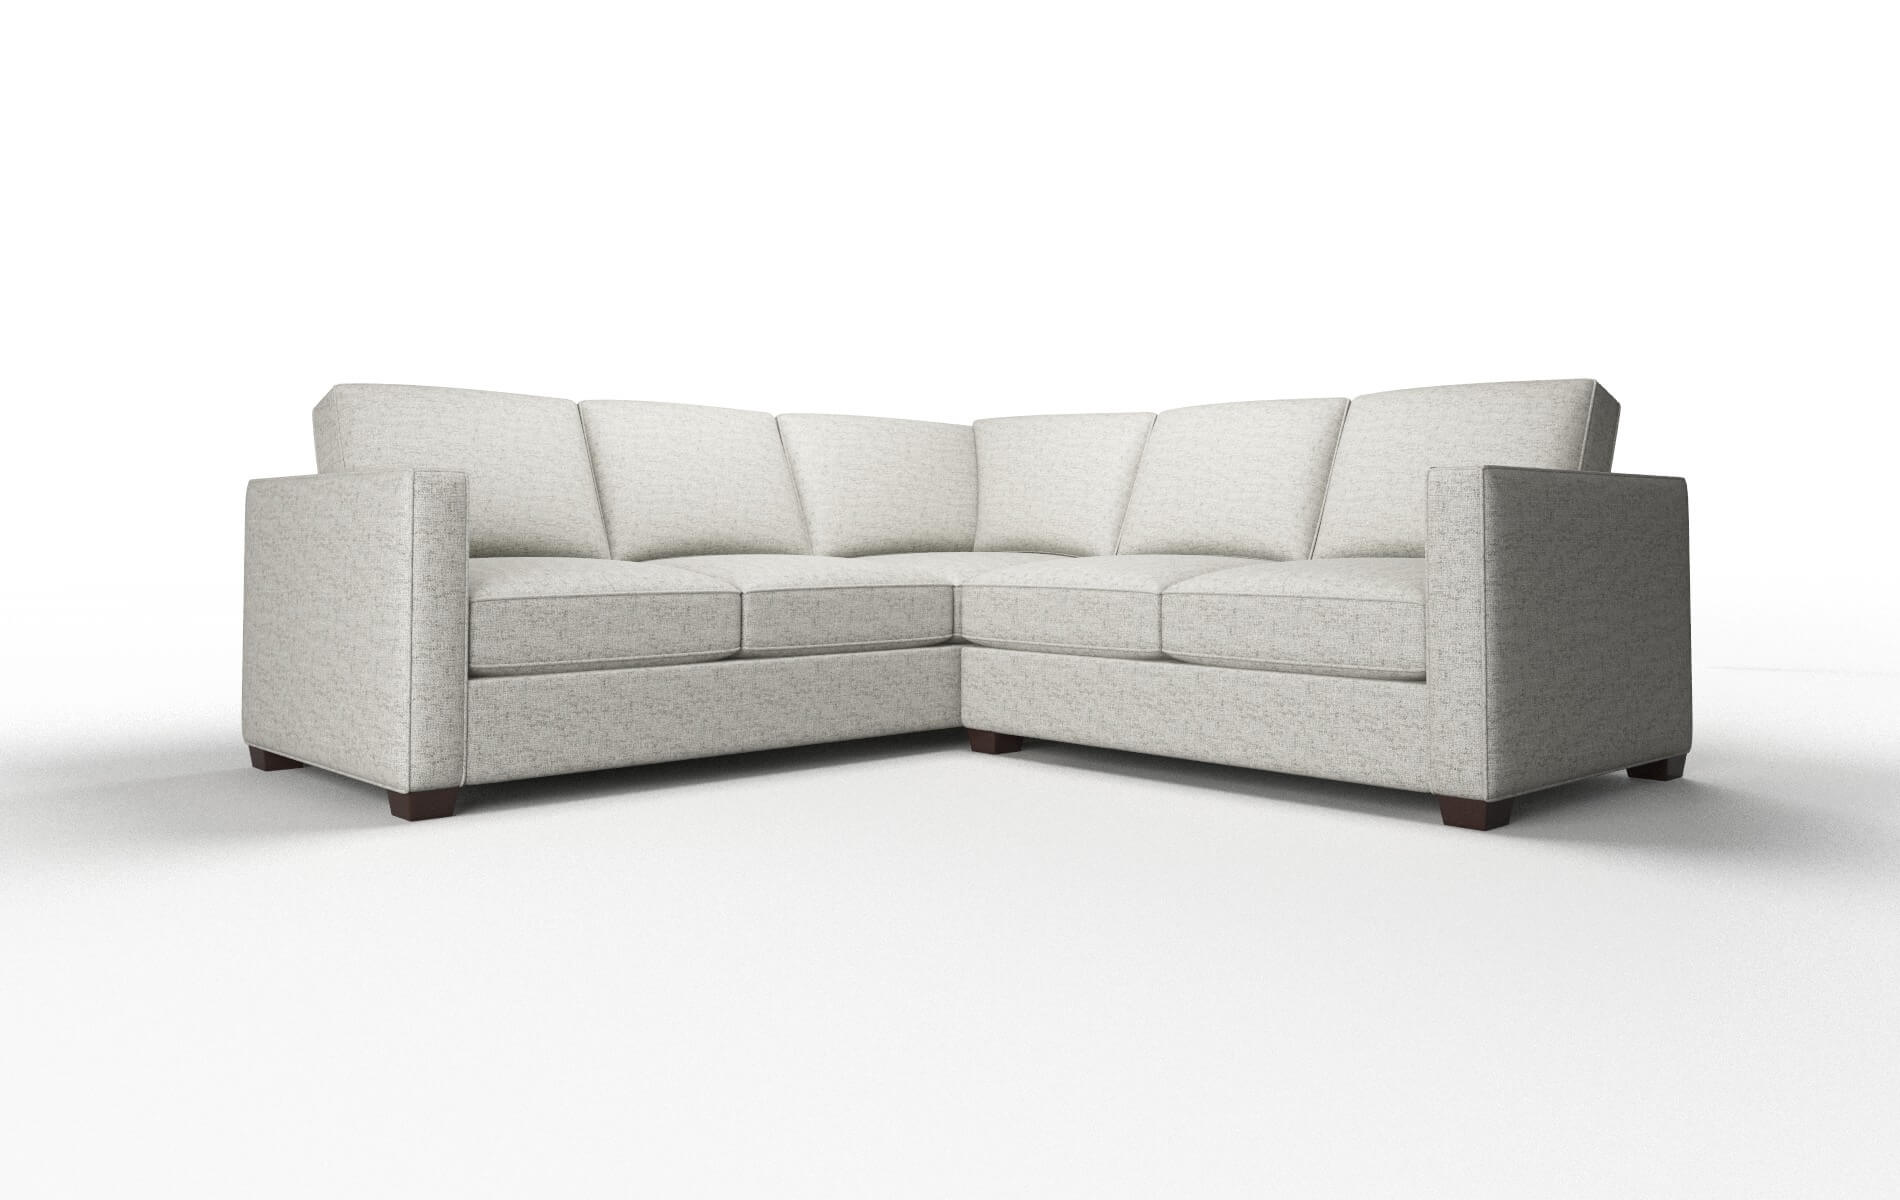 London Keylargo Ocean Sectional Dreamsofa